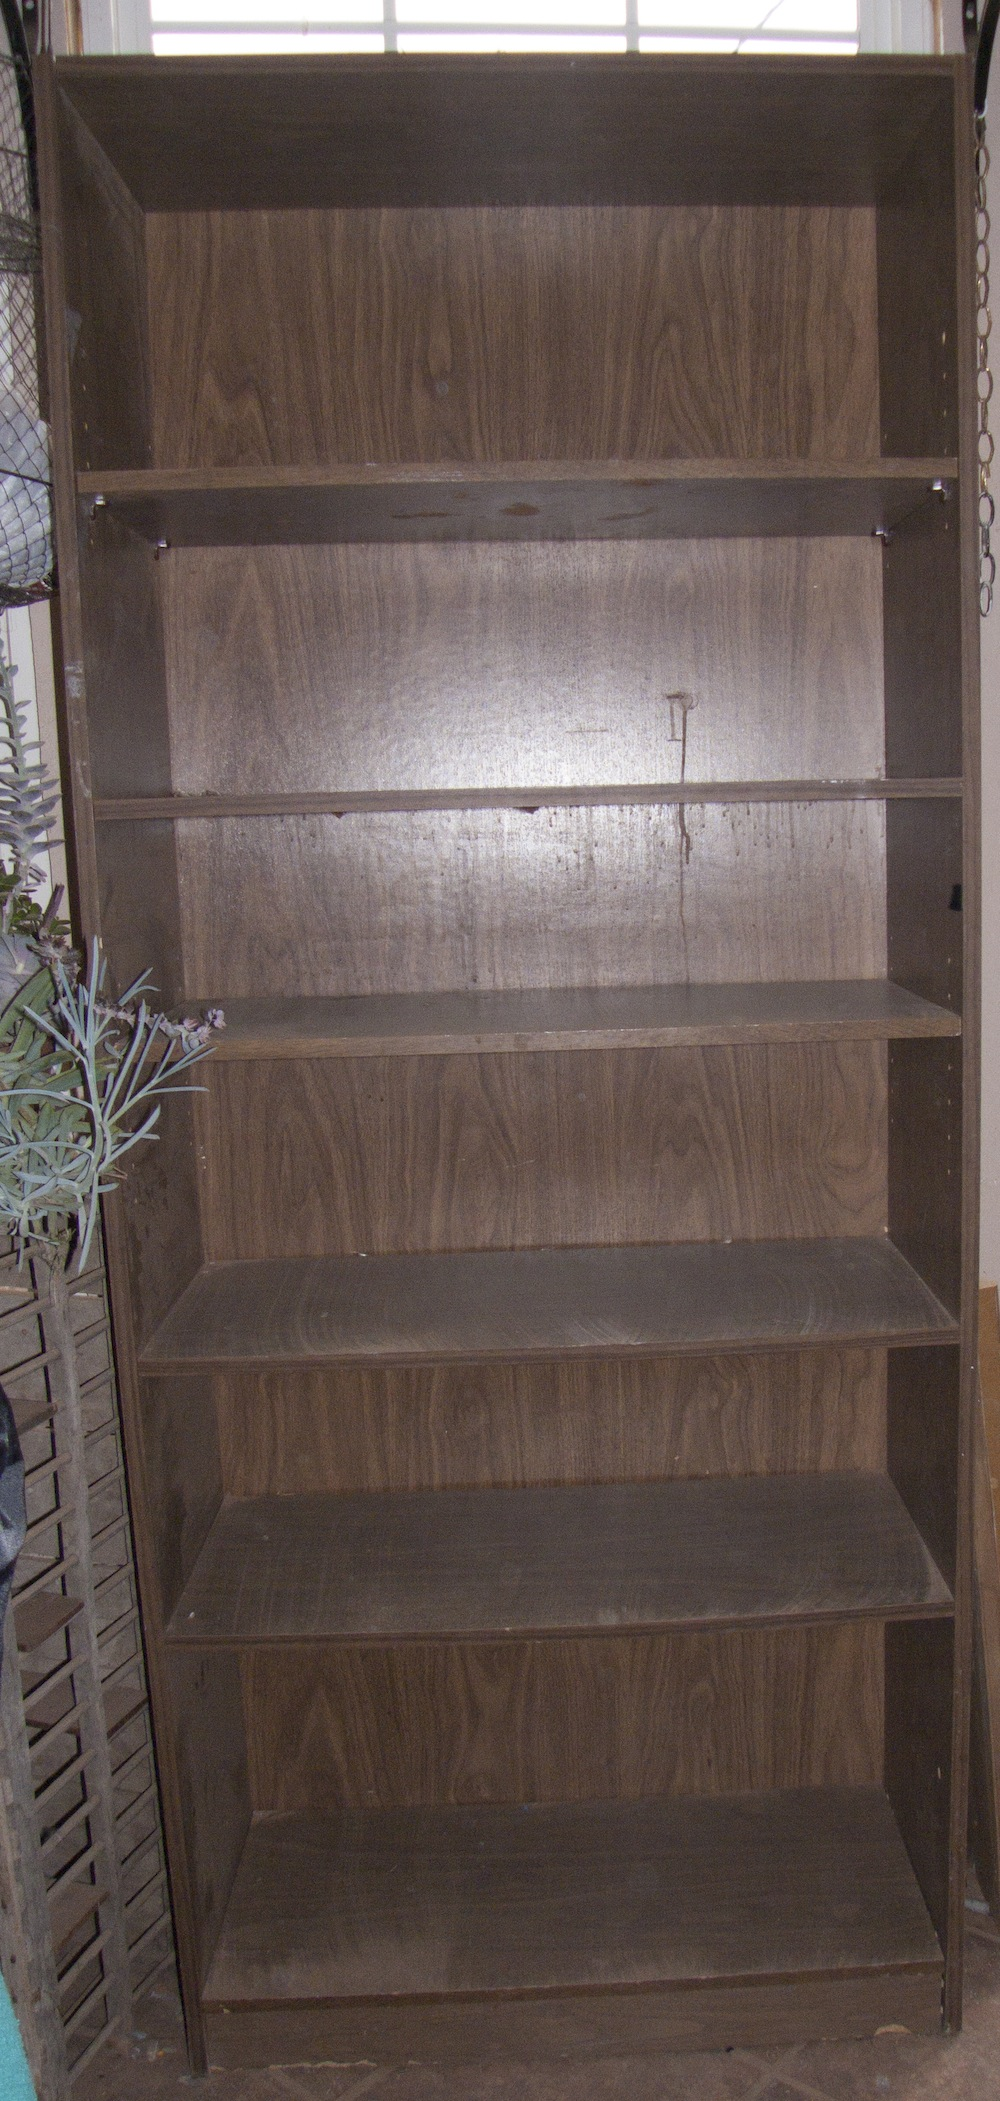 Cutomizing a Goodwill Bookcase